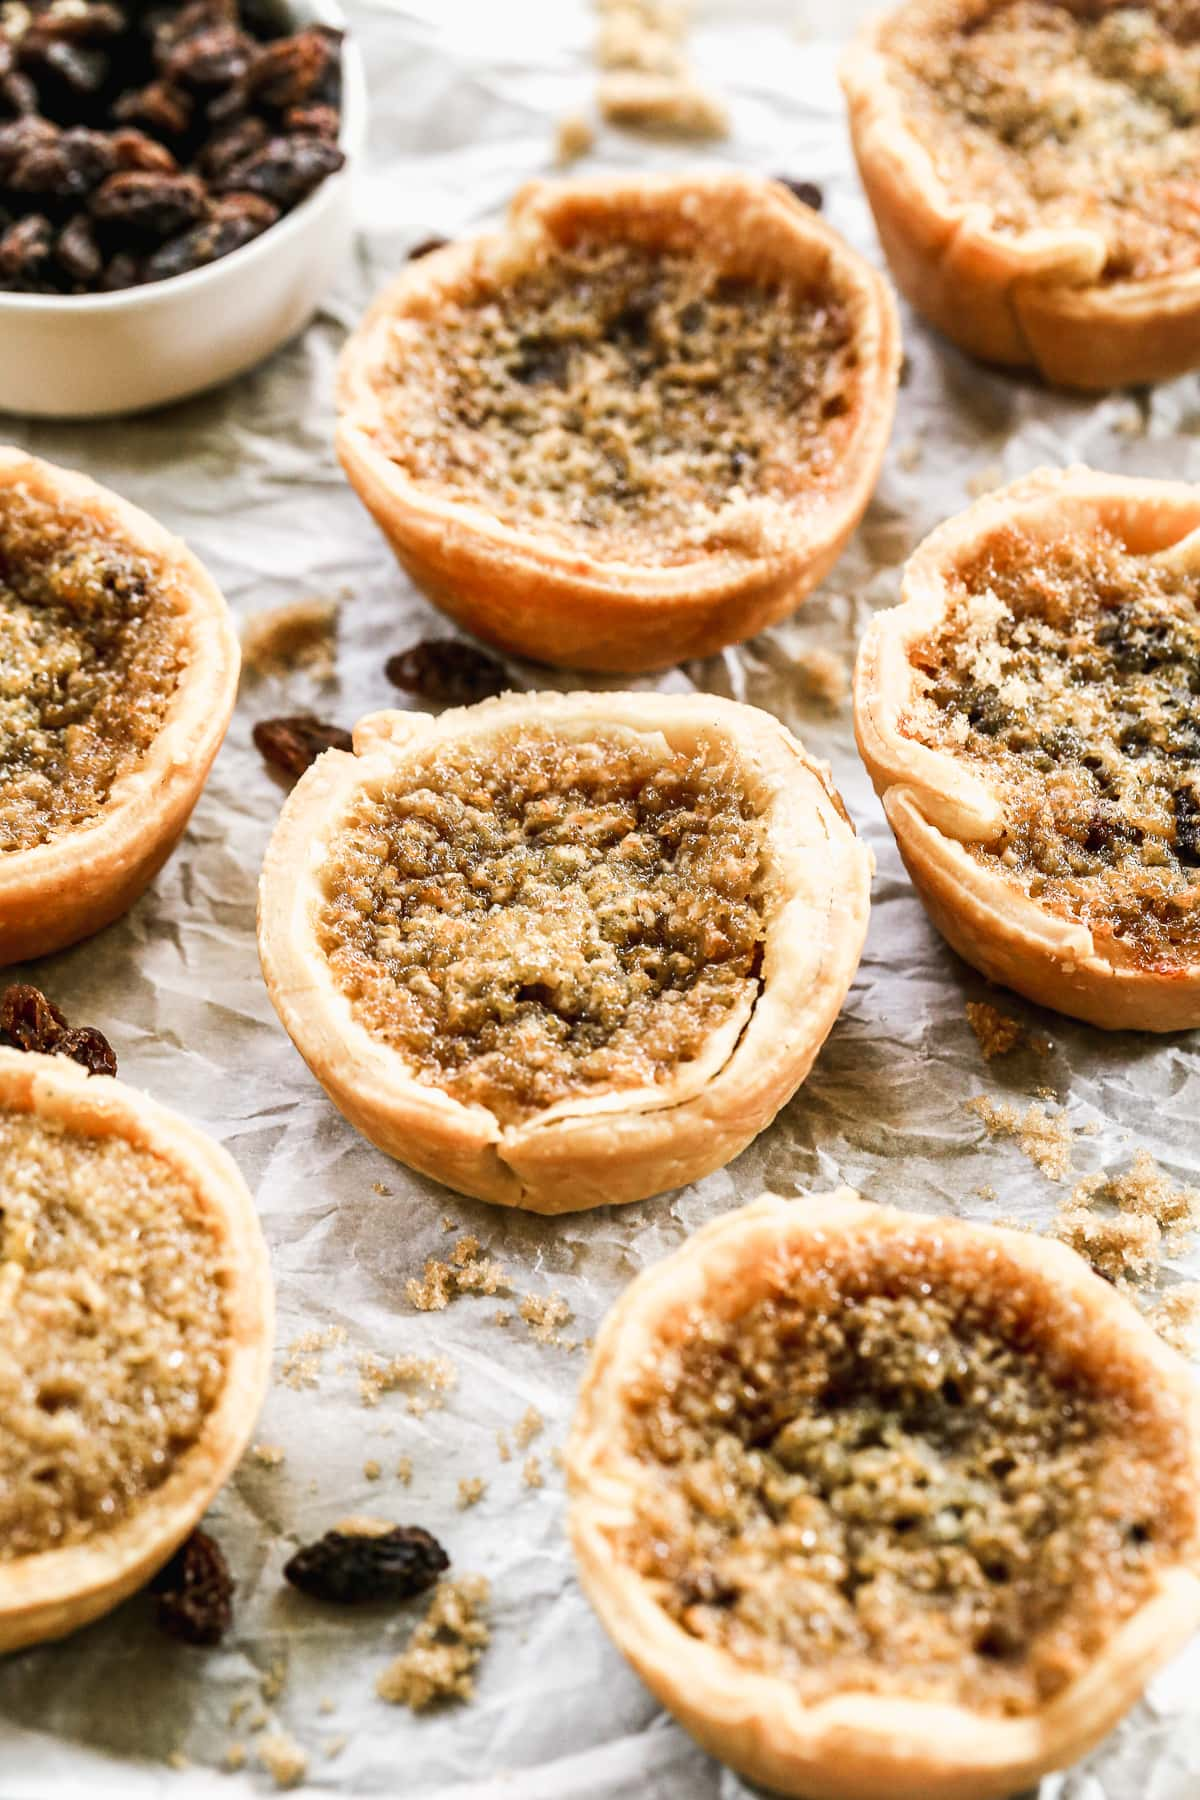 Butter Tarts. A gooey, old fashioned dessert similar to pecan tarts